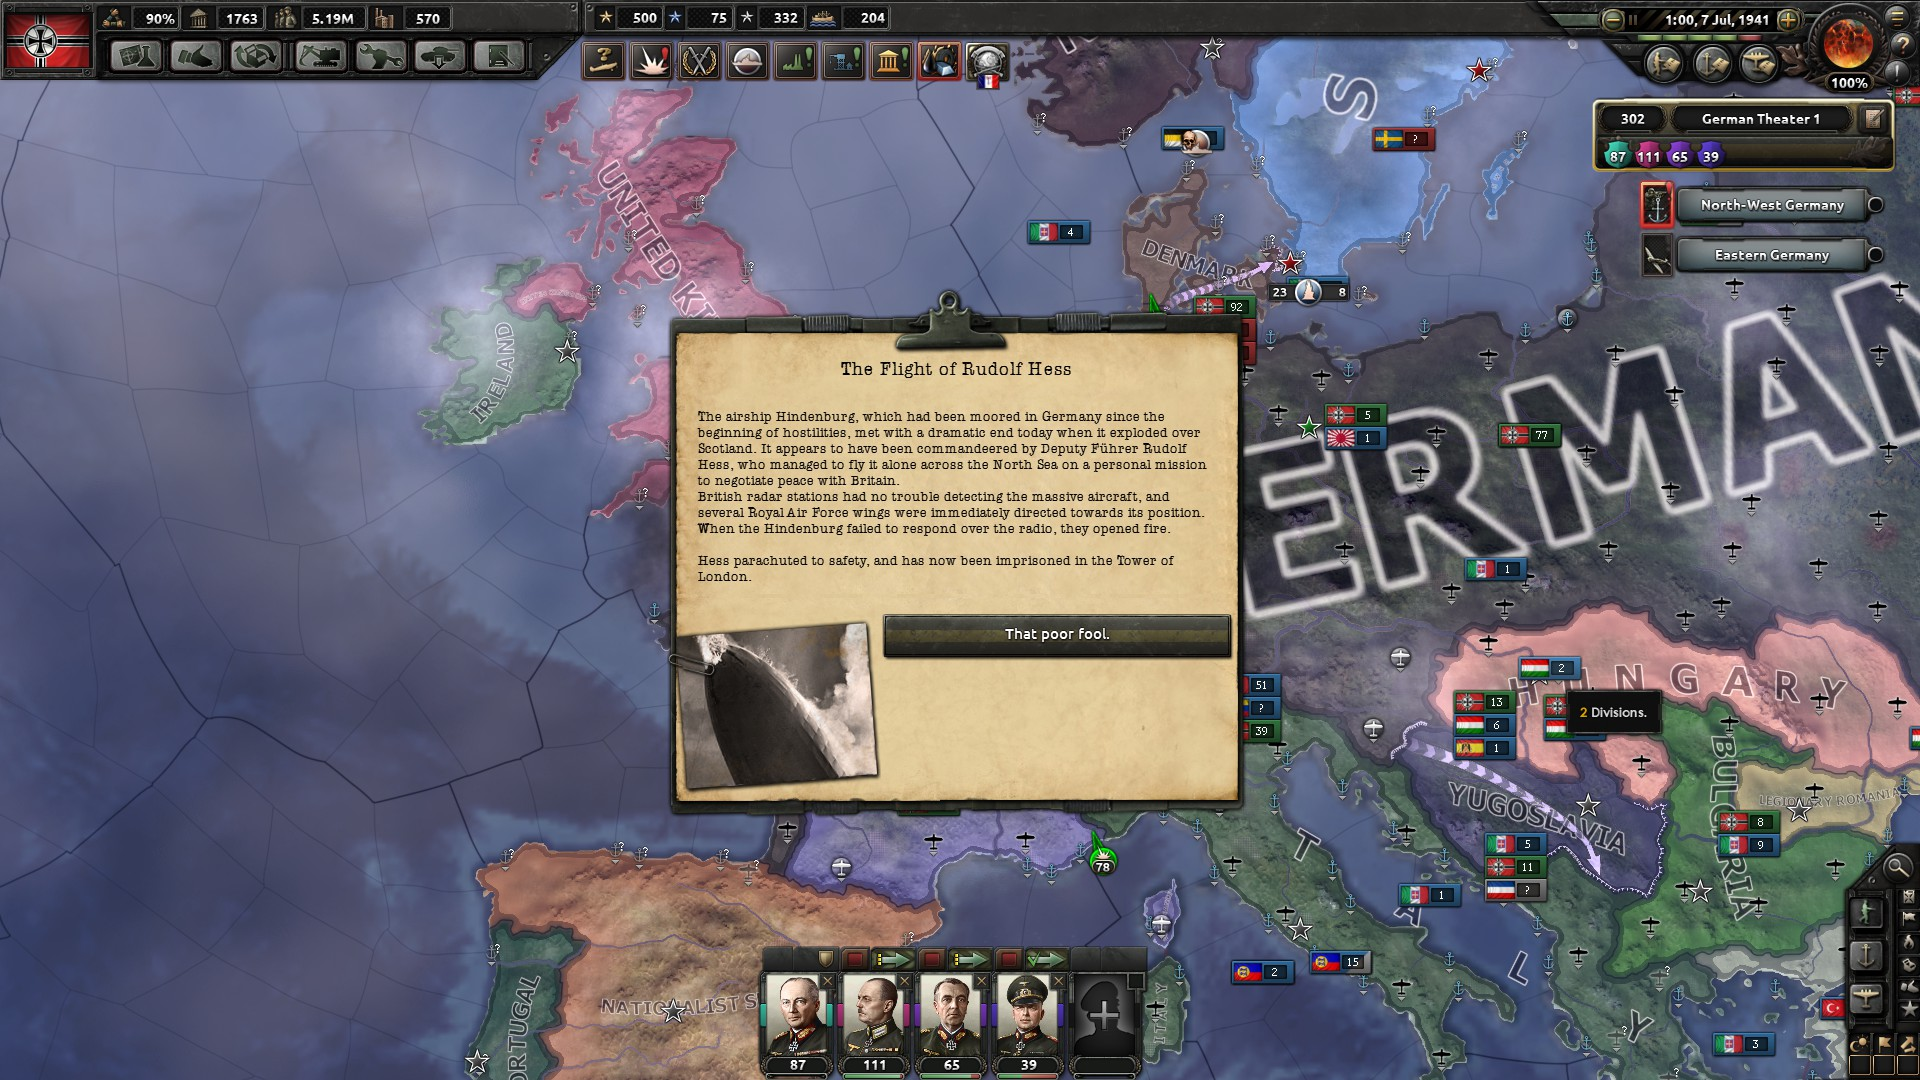 Hearts of Iron IV: World War II Grand Strategy (UPDATE March 2018